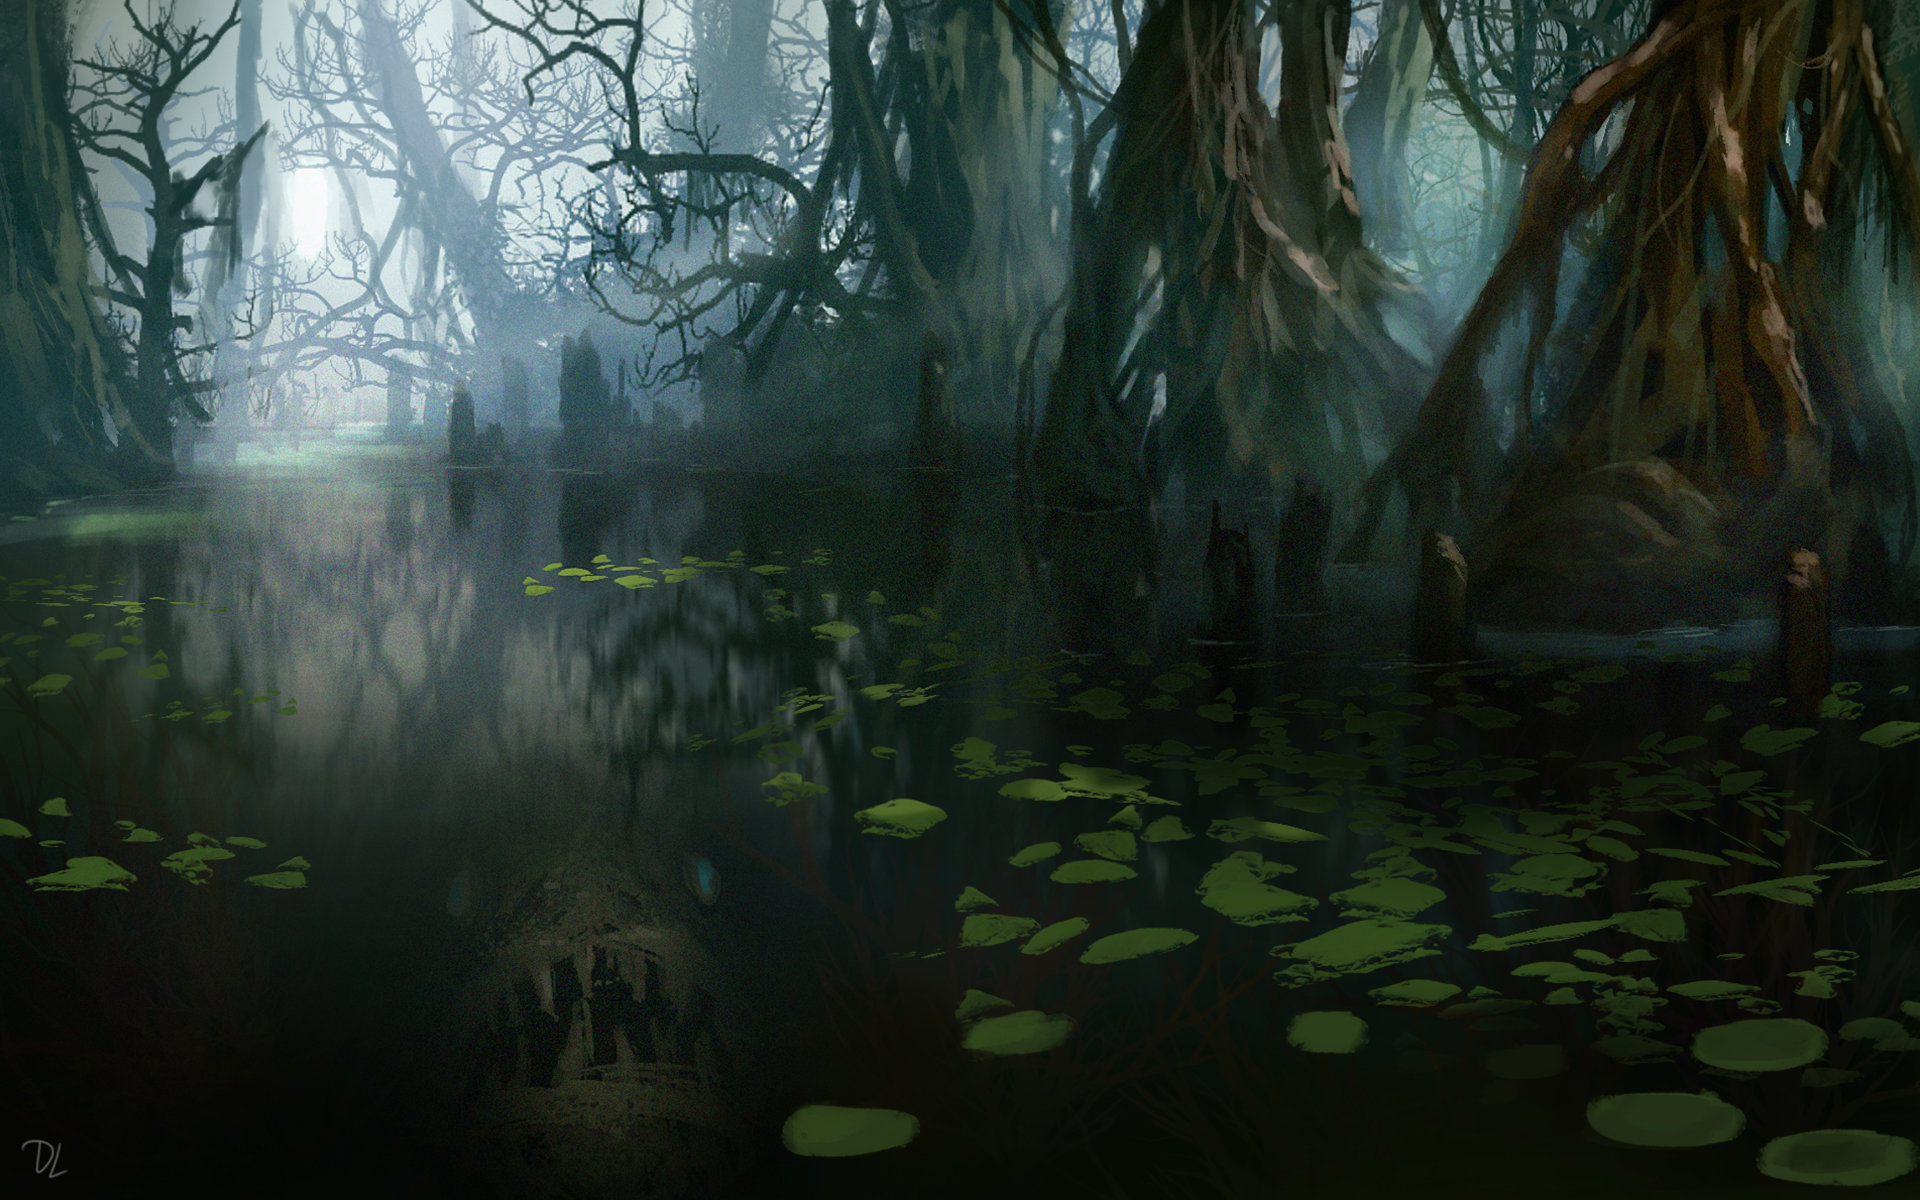 https://cdna.artstation.com/p/assets/images/images/000/365/074/large/denis-loebner-swamp-predator.jpg?1419083115